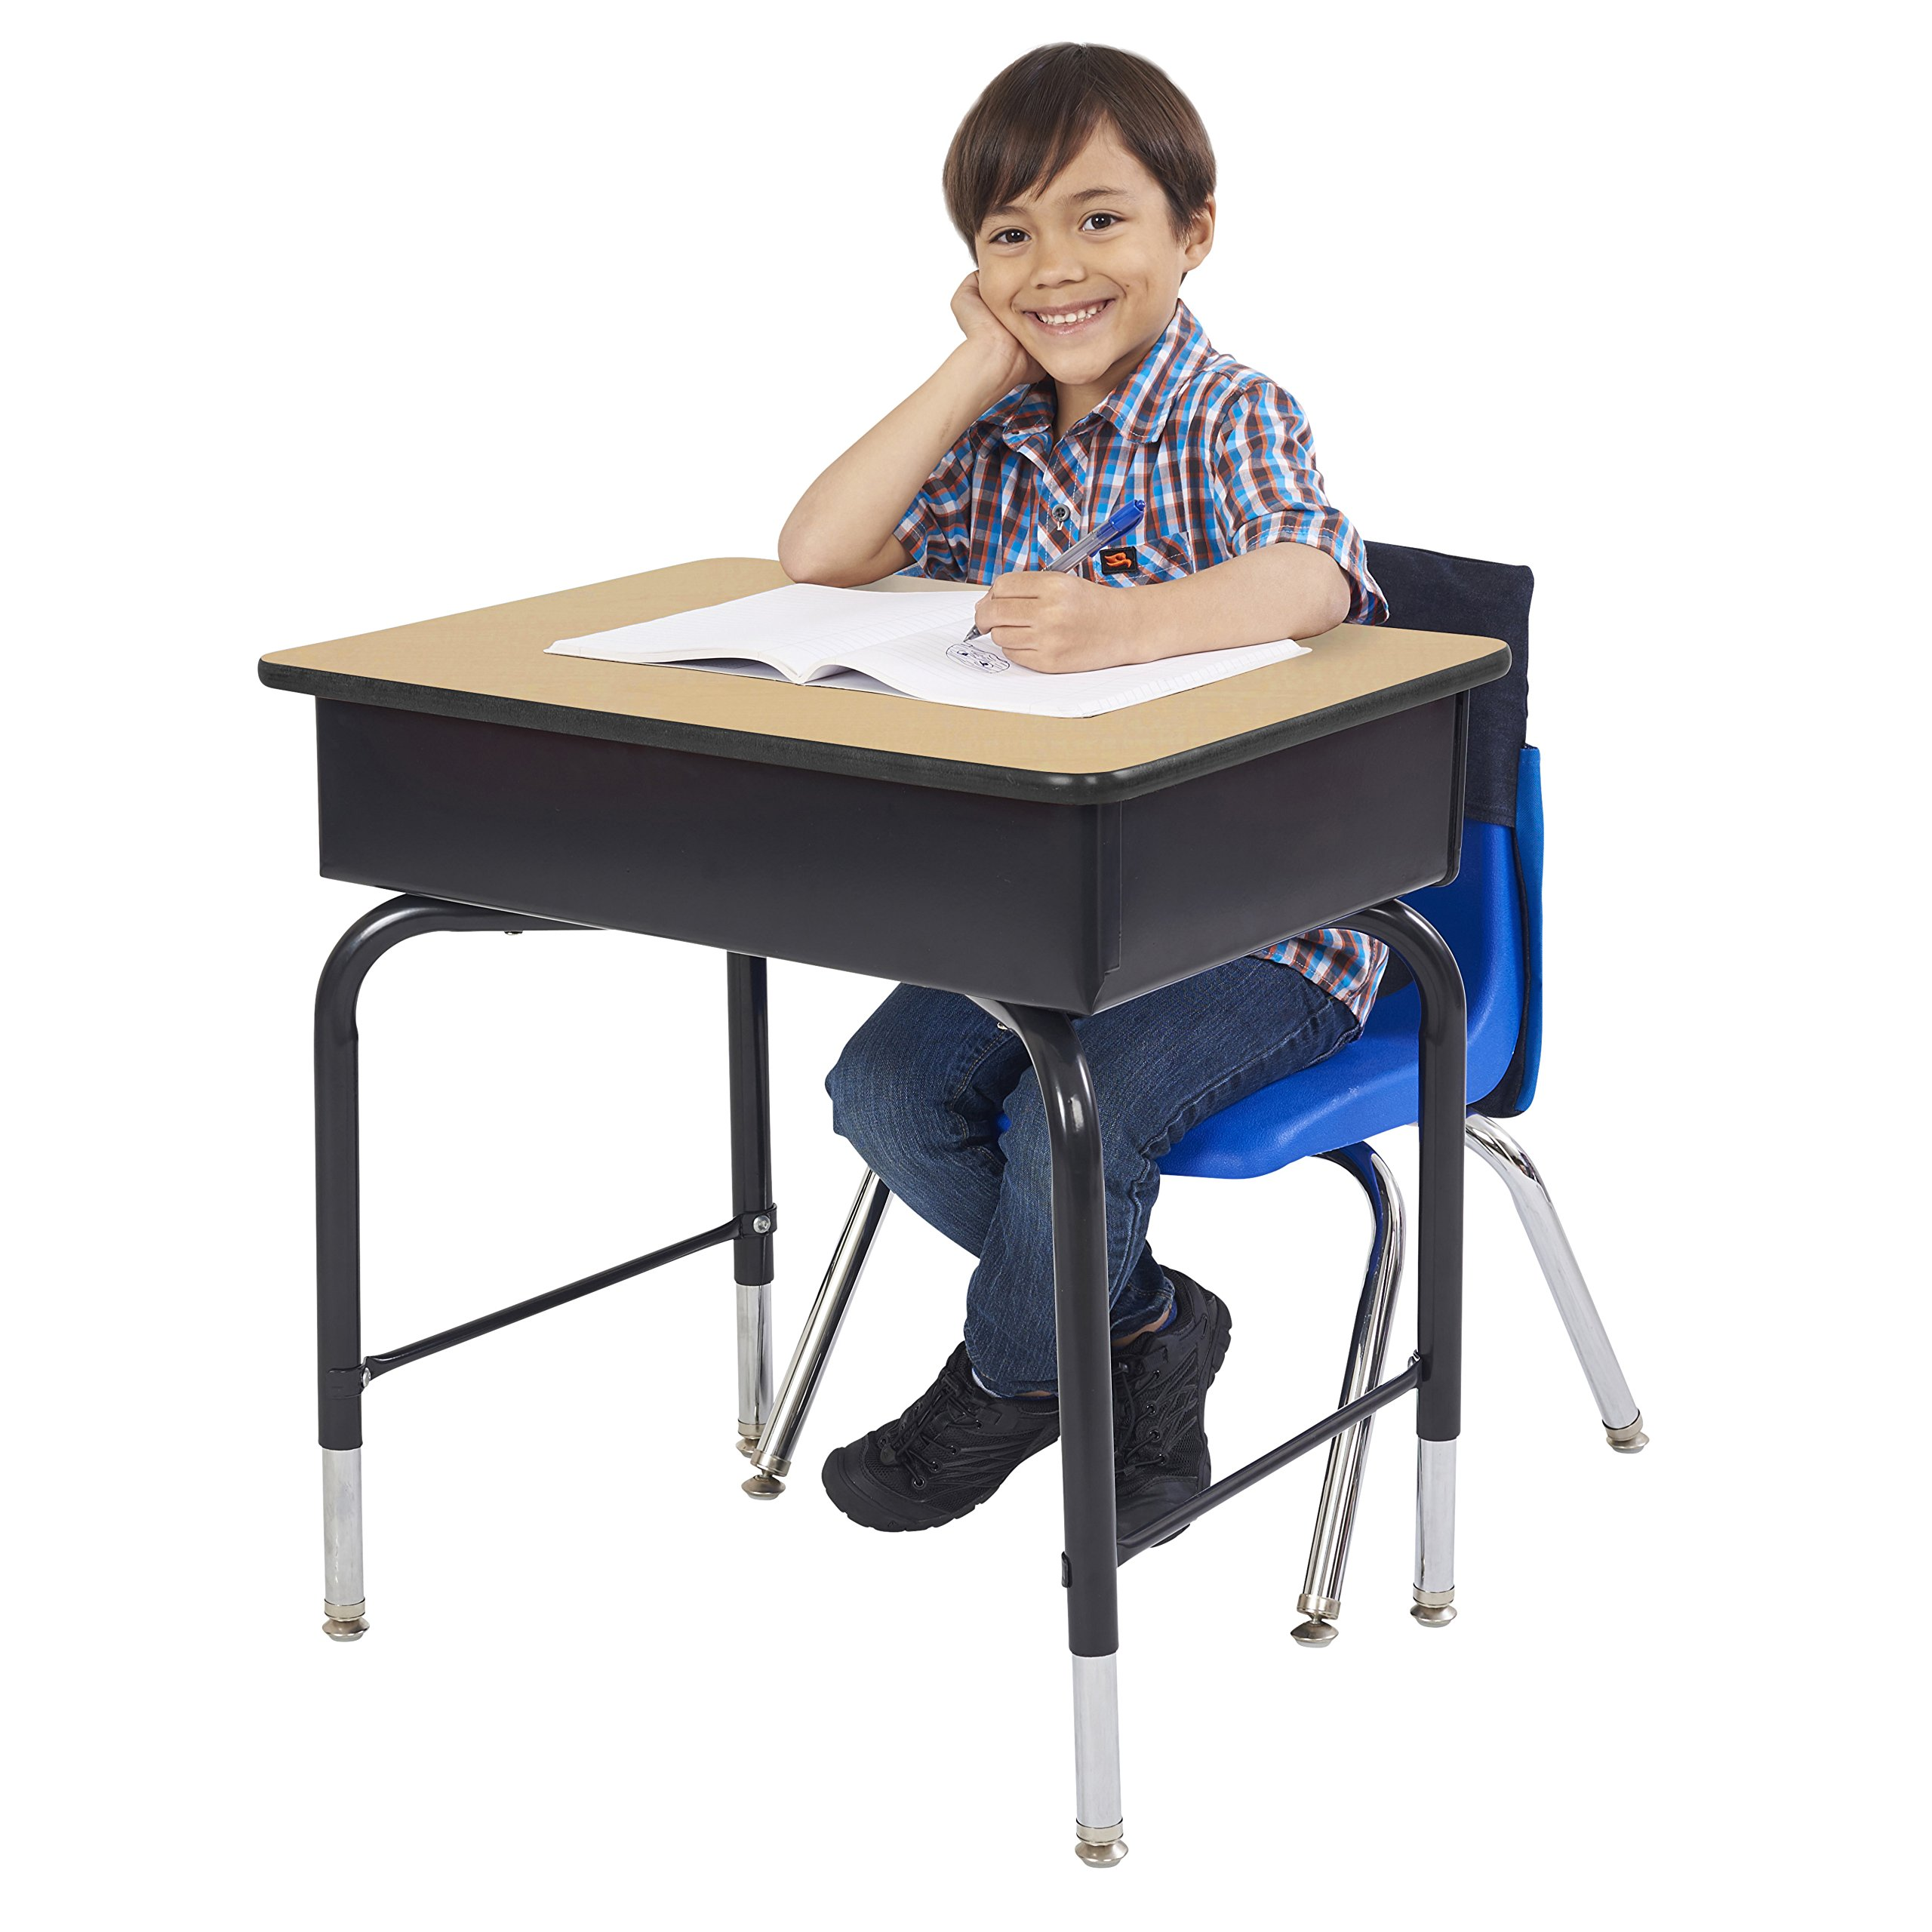 ECR4Kids ELR-24103F-MP 24'' x 18'' Adjustable Open Front Student Desk with Metal Book Box, Maple and Black